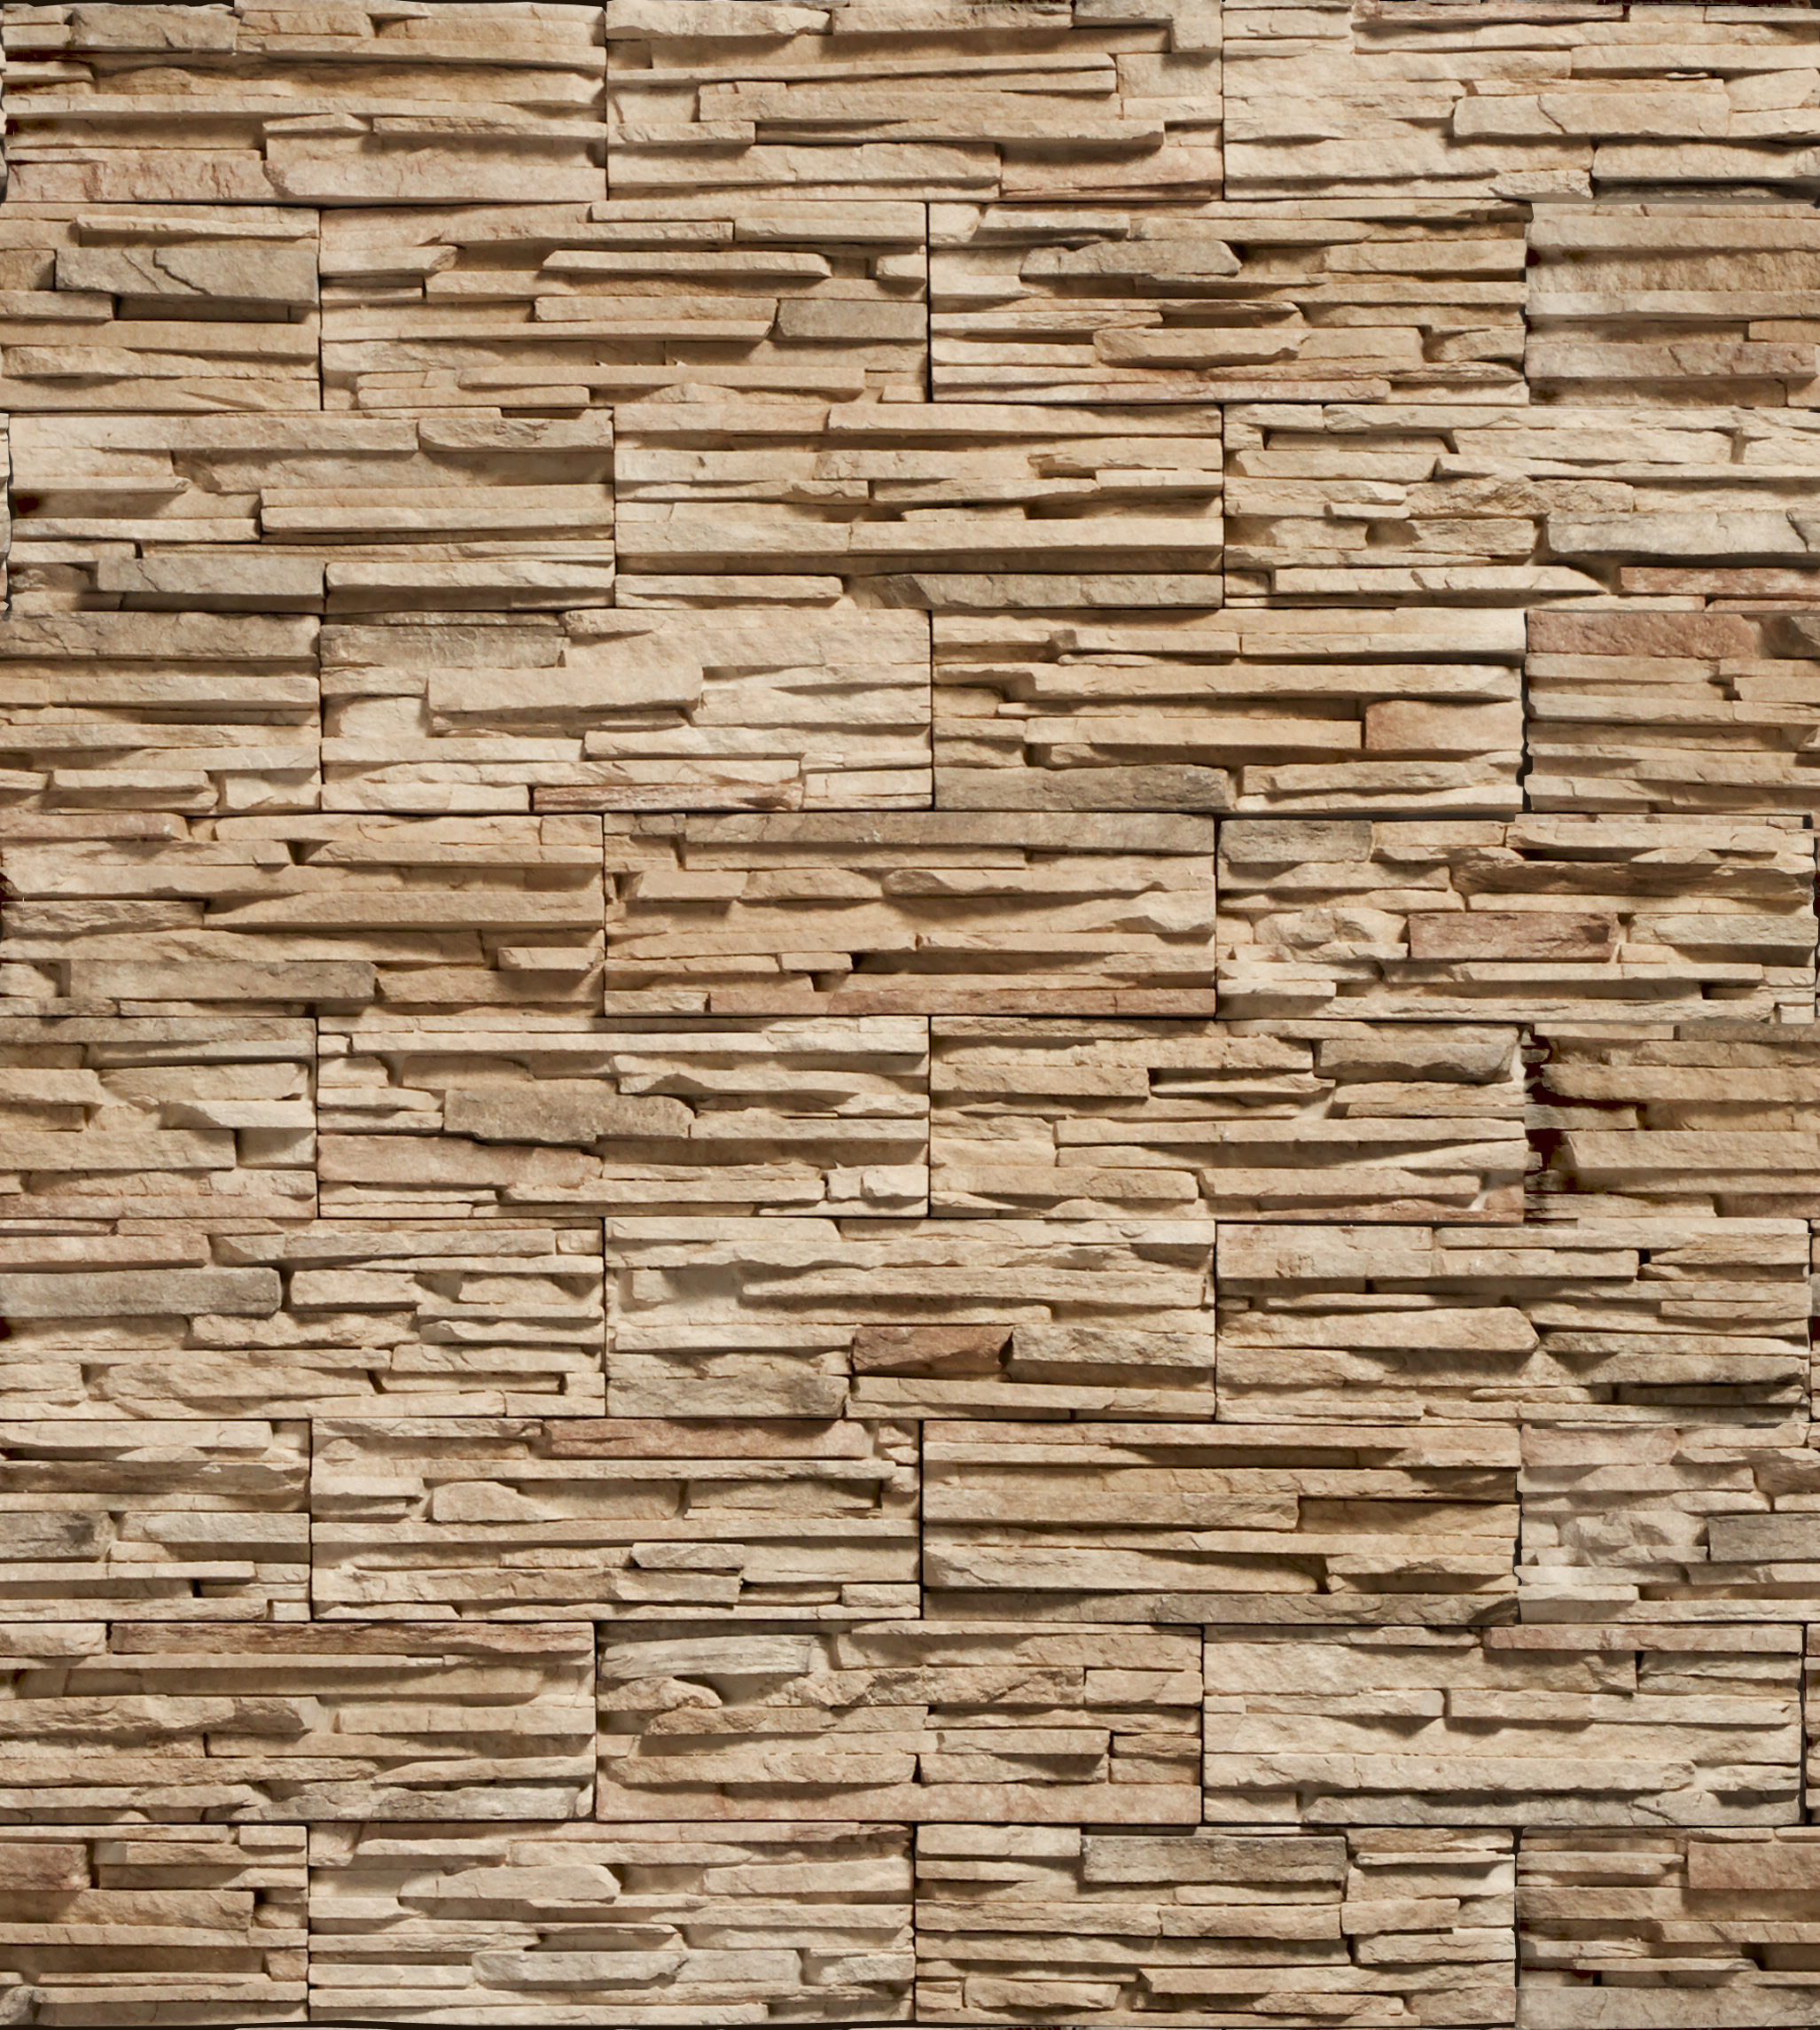 stone, wall, texture stone, stone wall, download background, stone ...